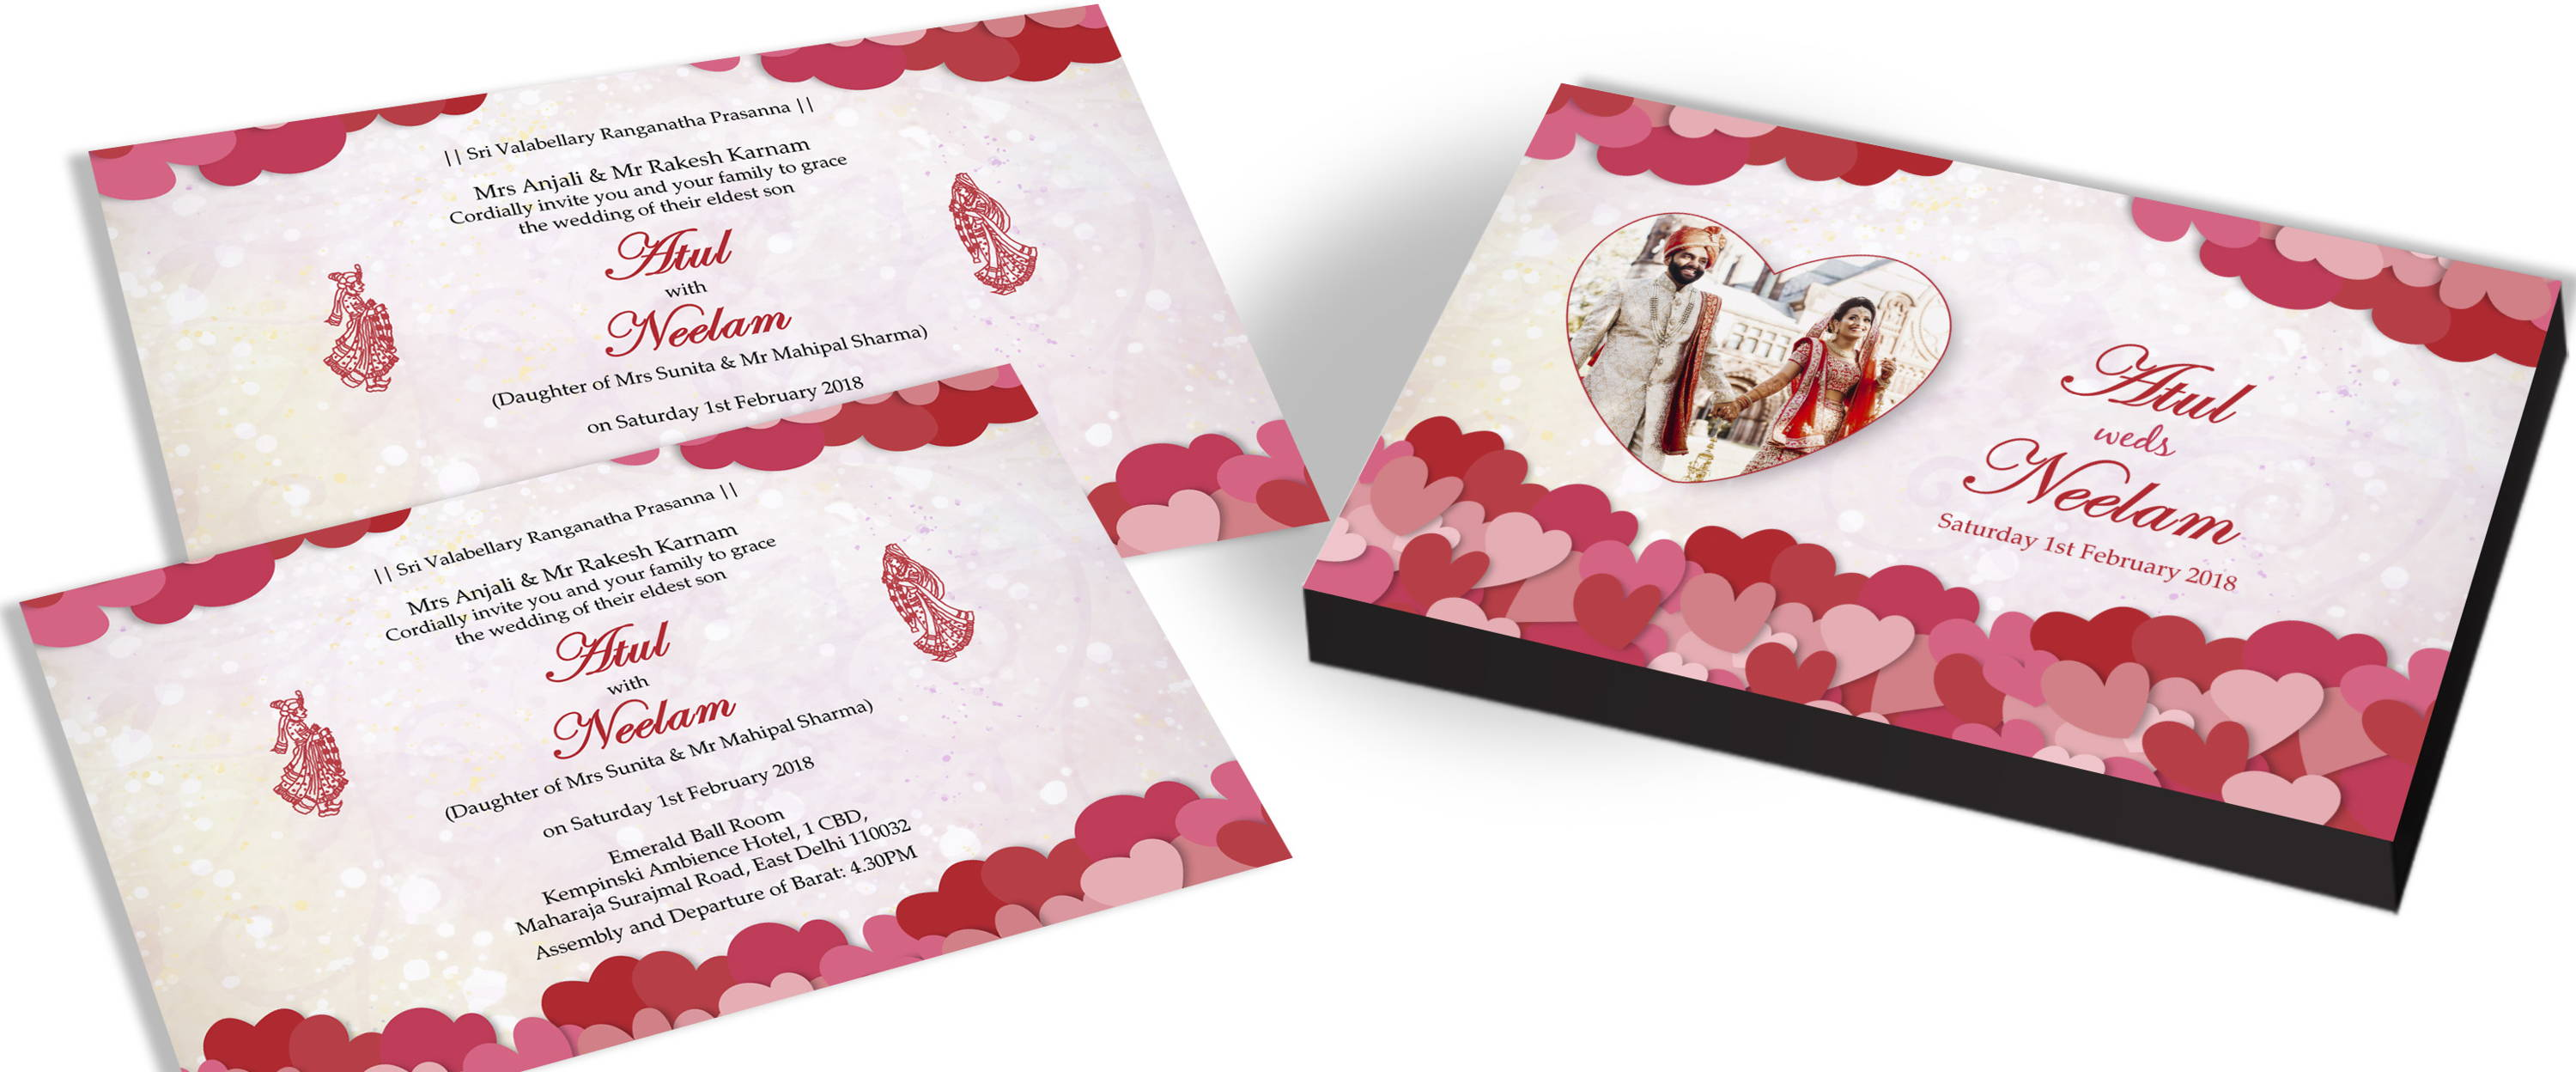 Personalised Invitation for Heart Theme Wedding